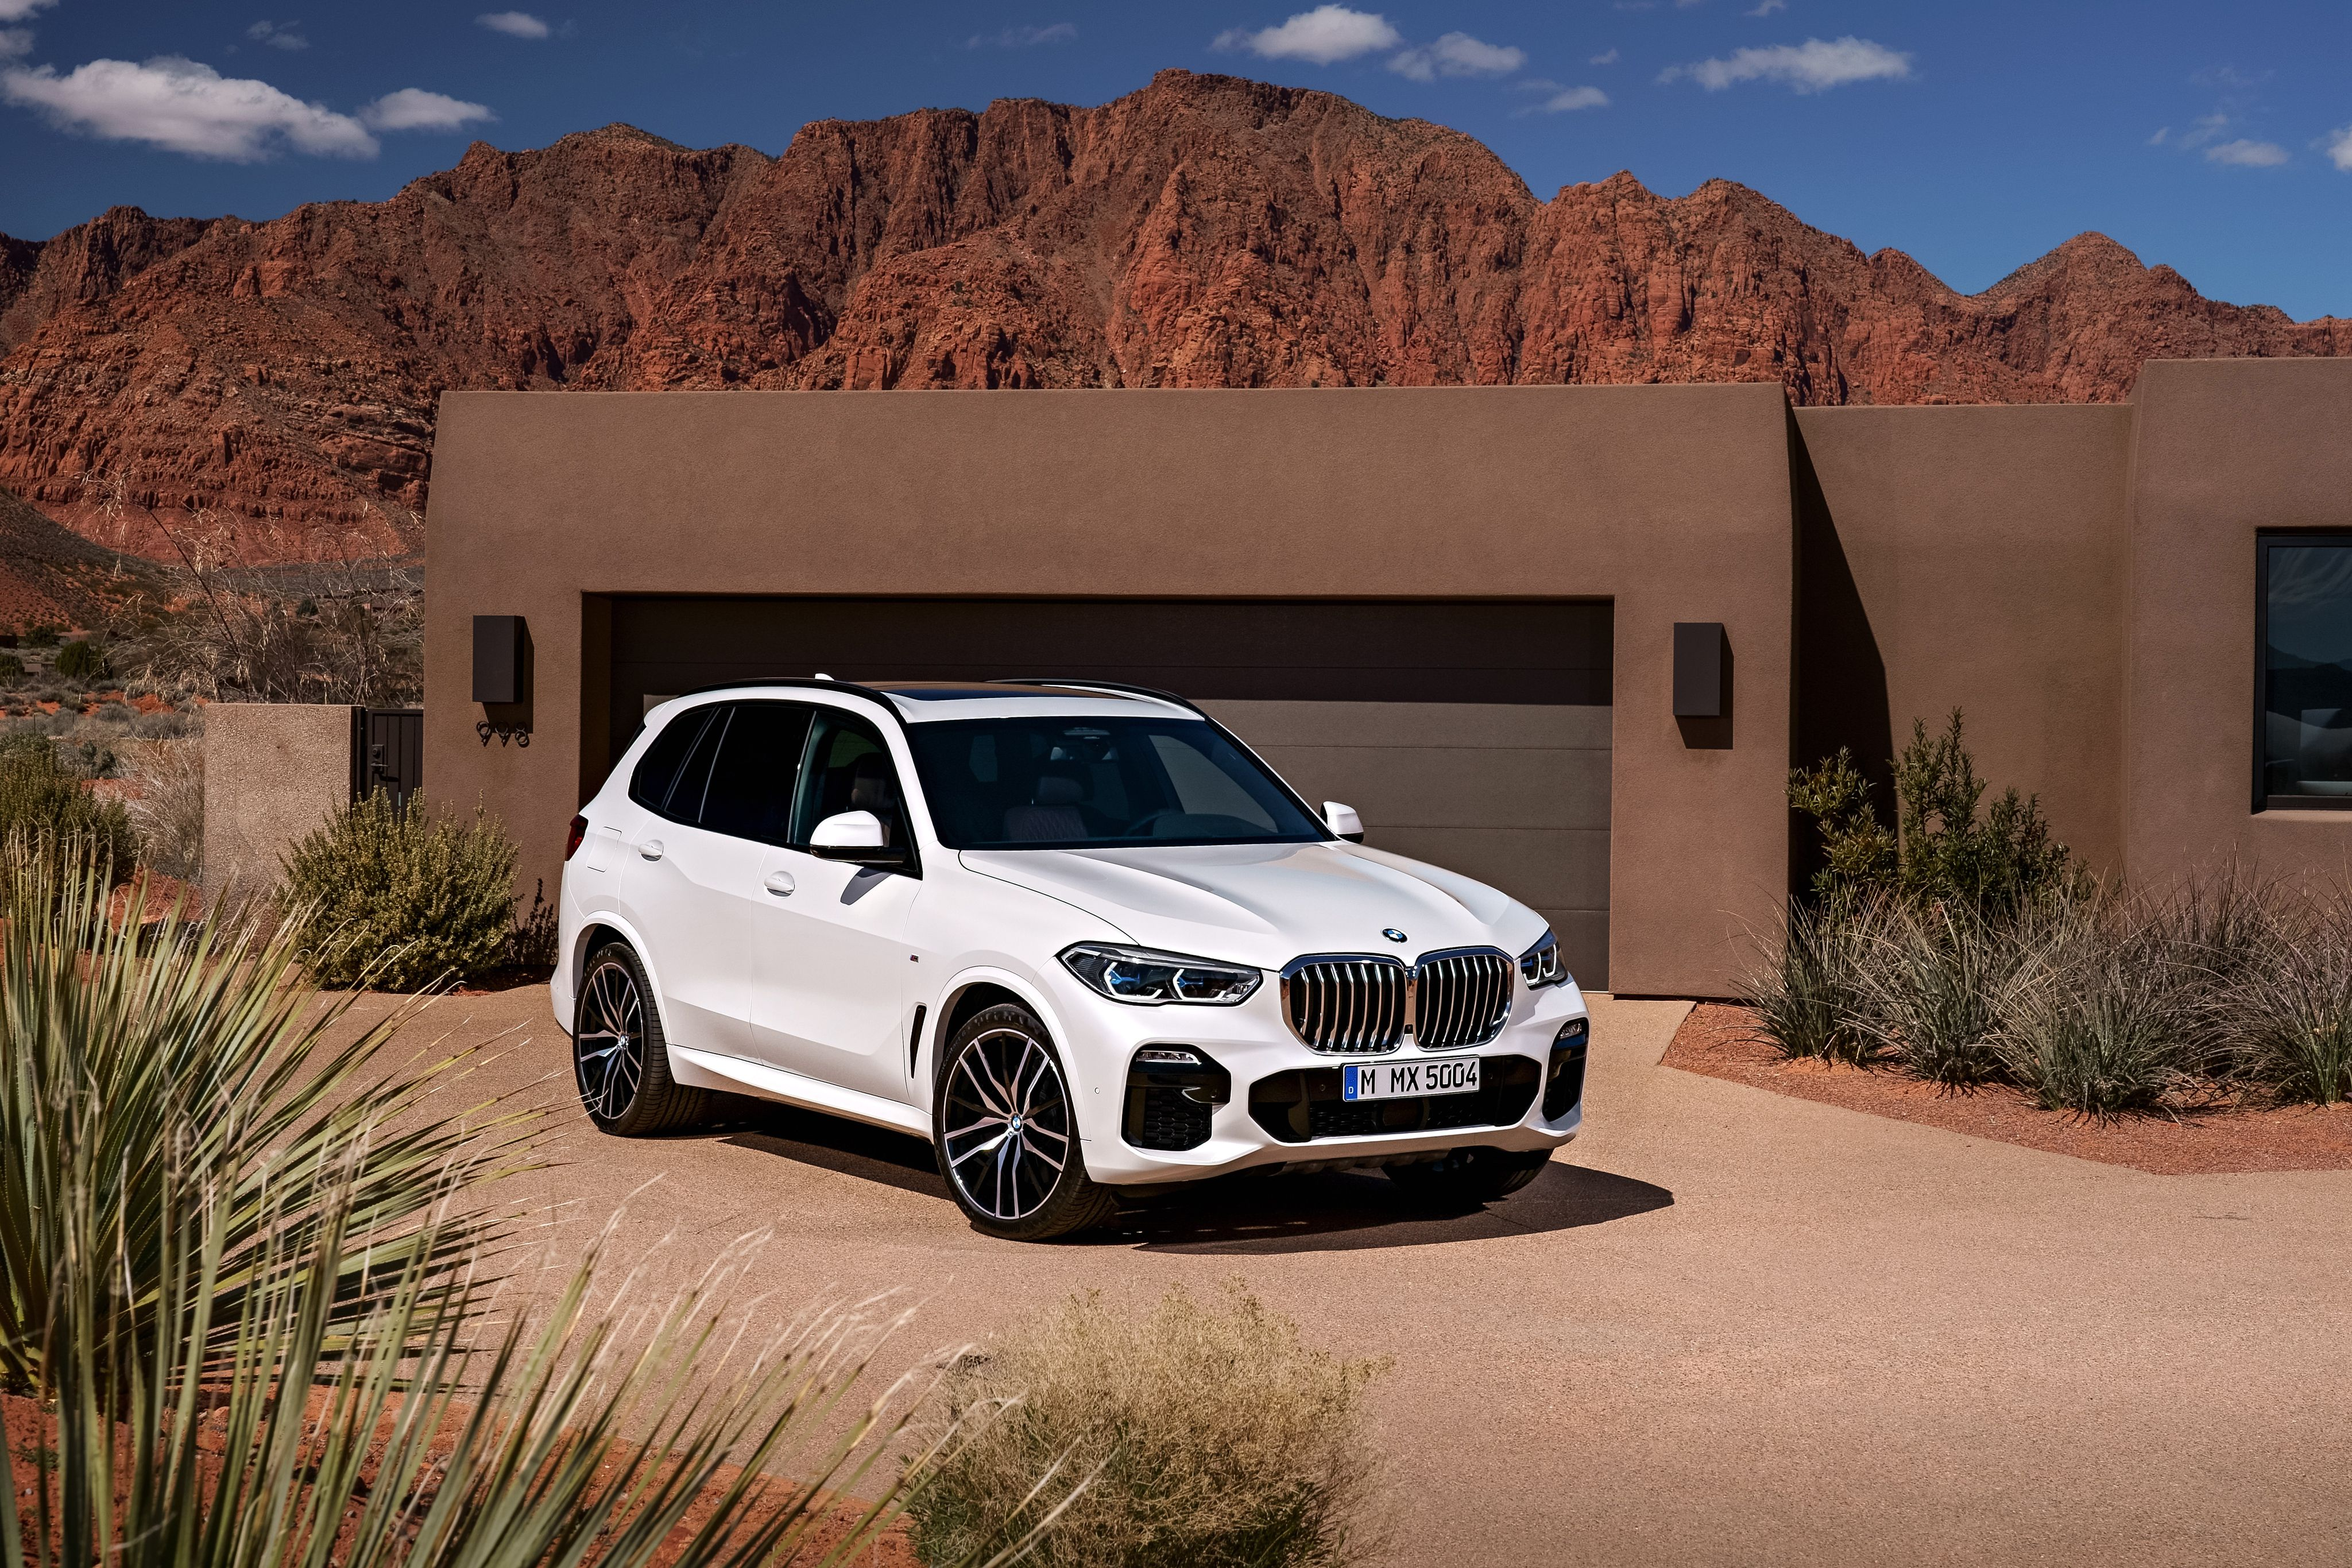 Bmw X5 4k Wallpapers Top Free Bmw X5 4k Backgrounds